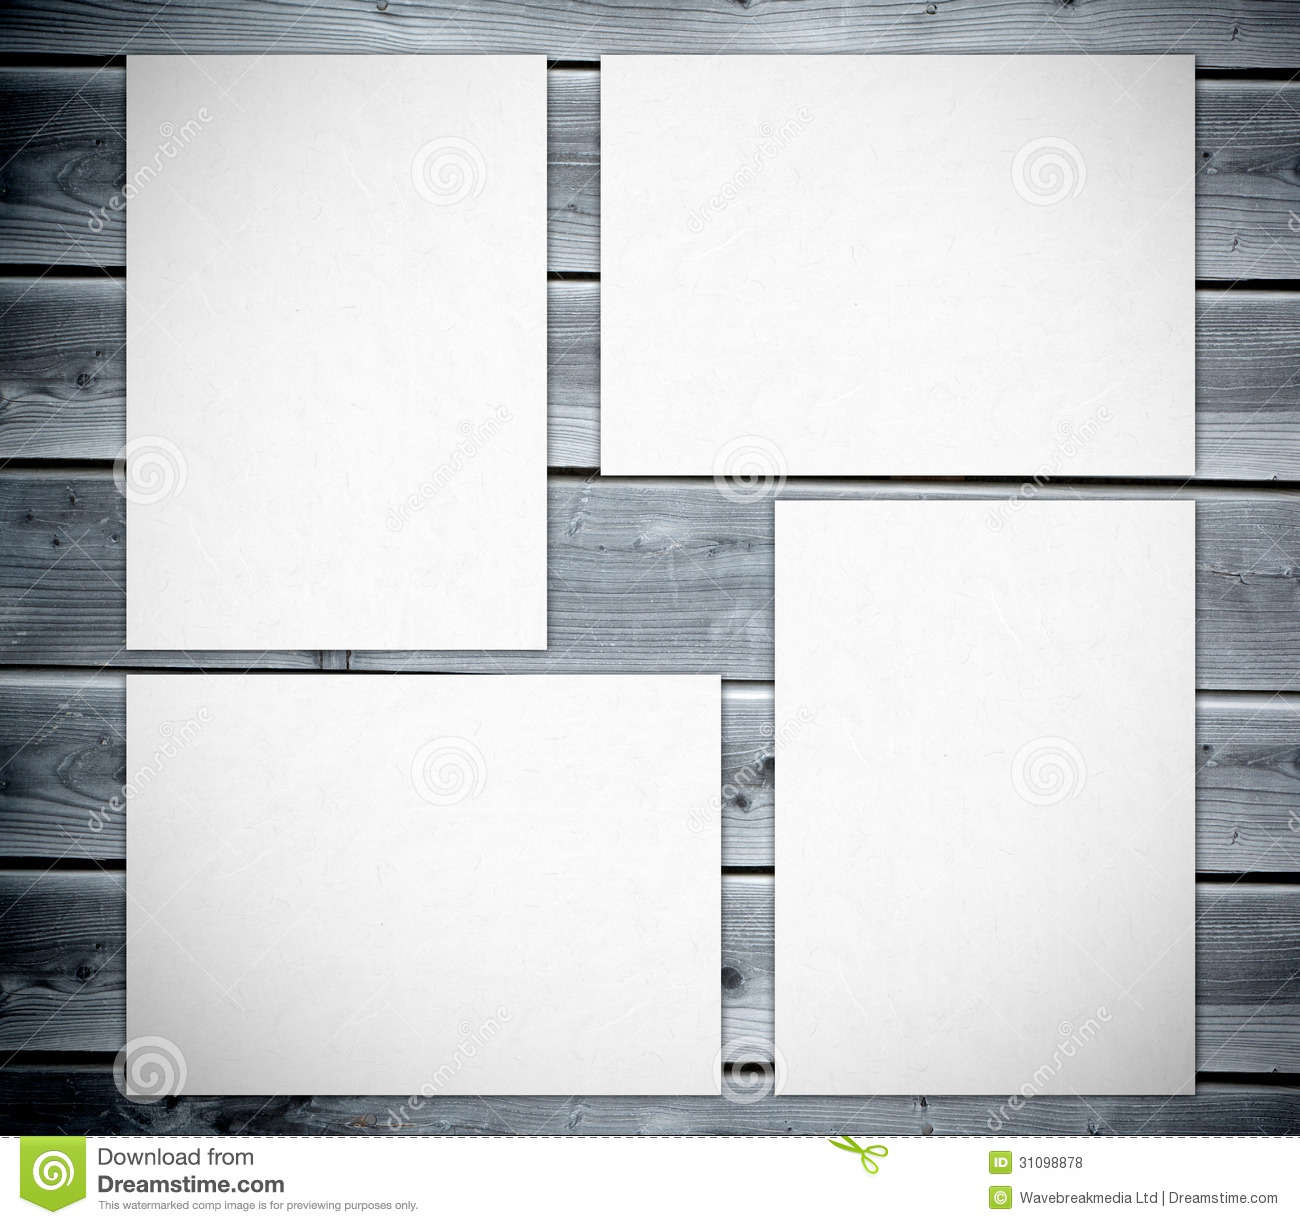 white posters against wooden boards royalty free stock